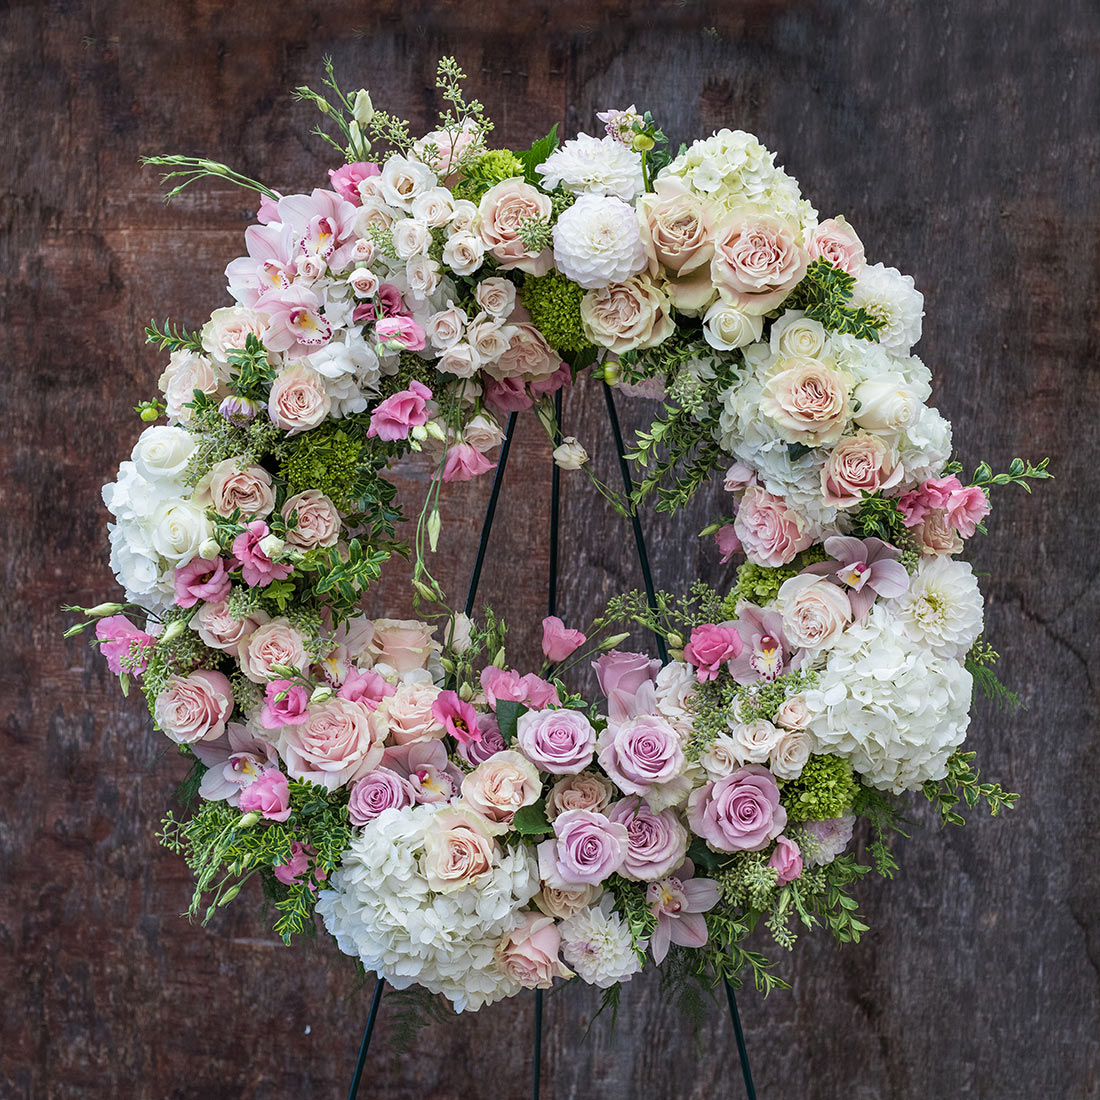 An image of a rose and hydrangea funeral wreath